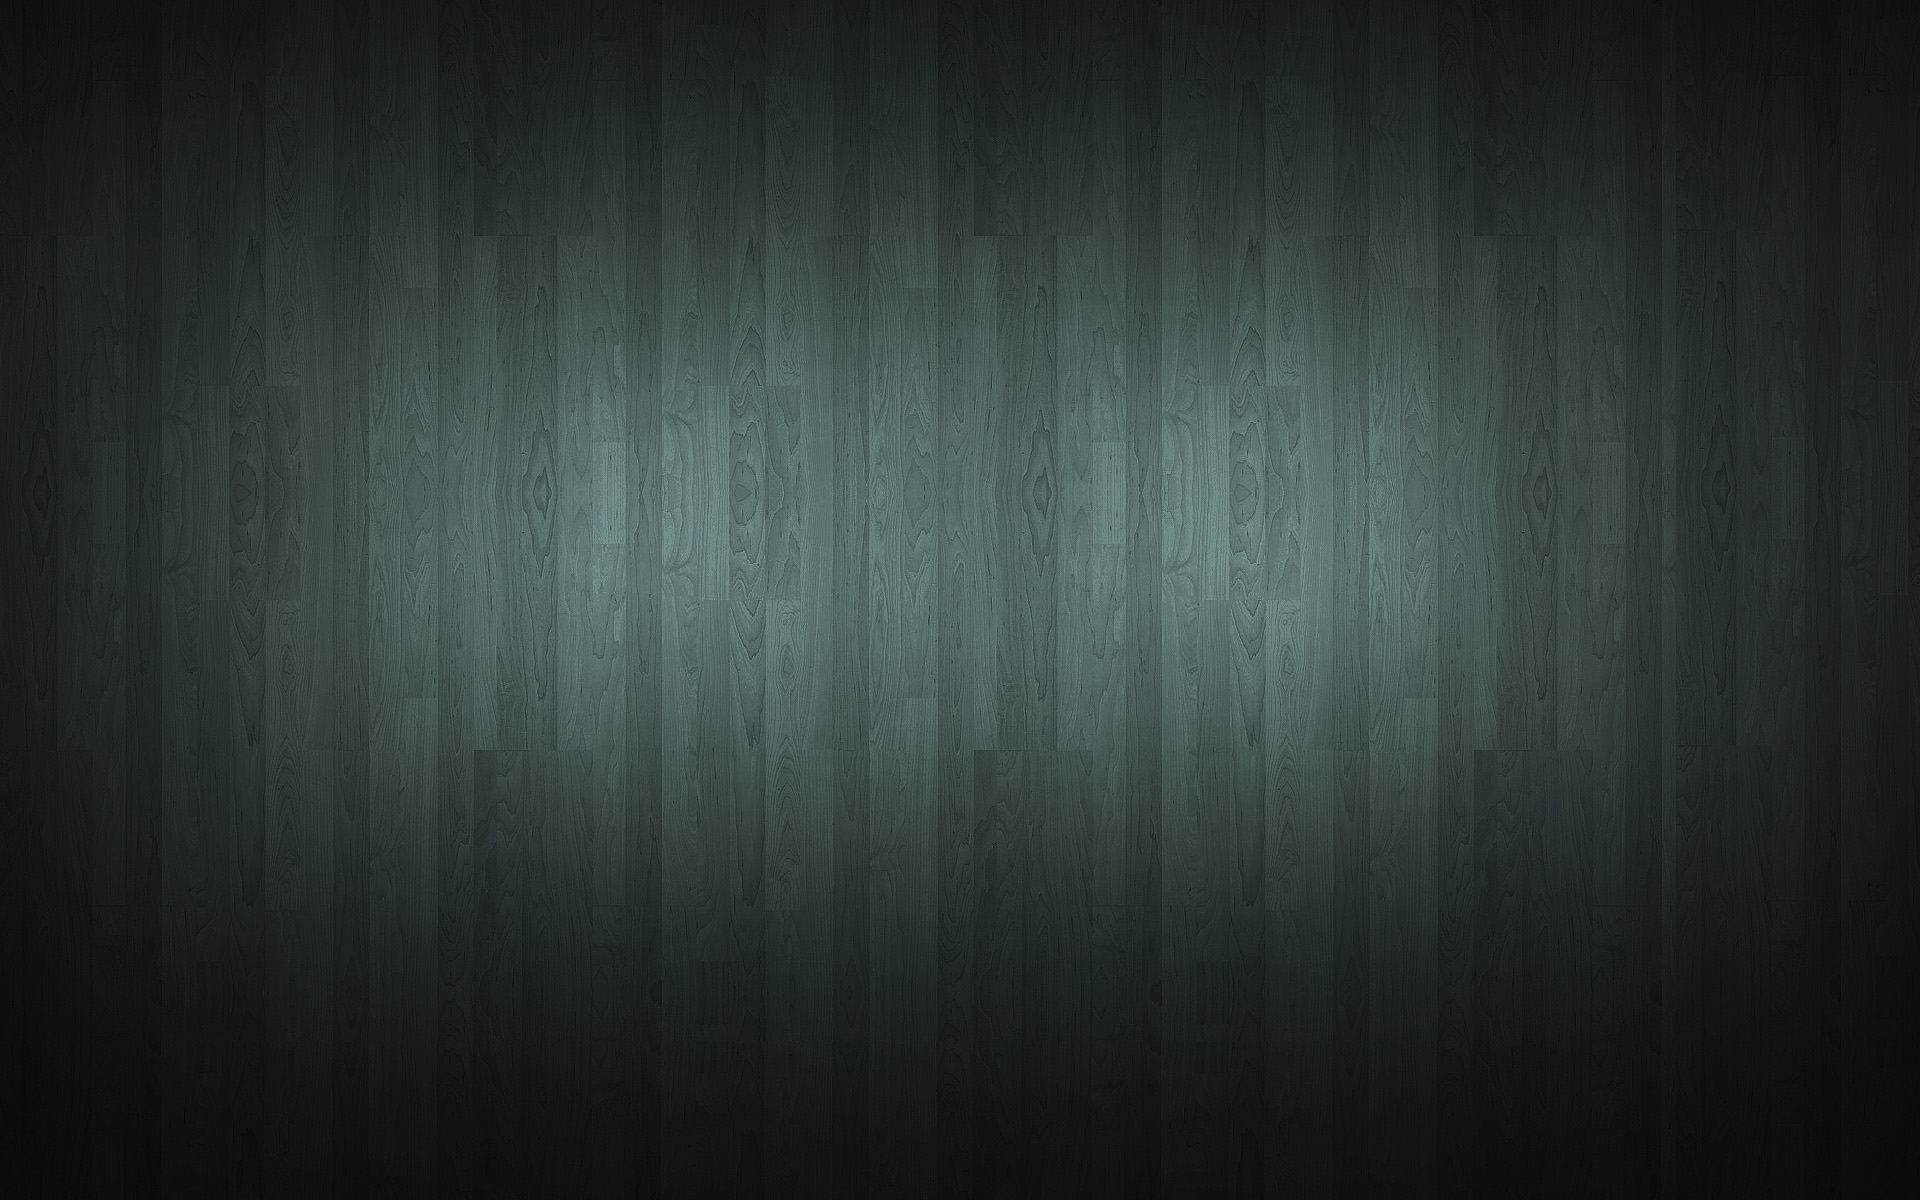 Black Gradient Texture Background